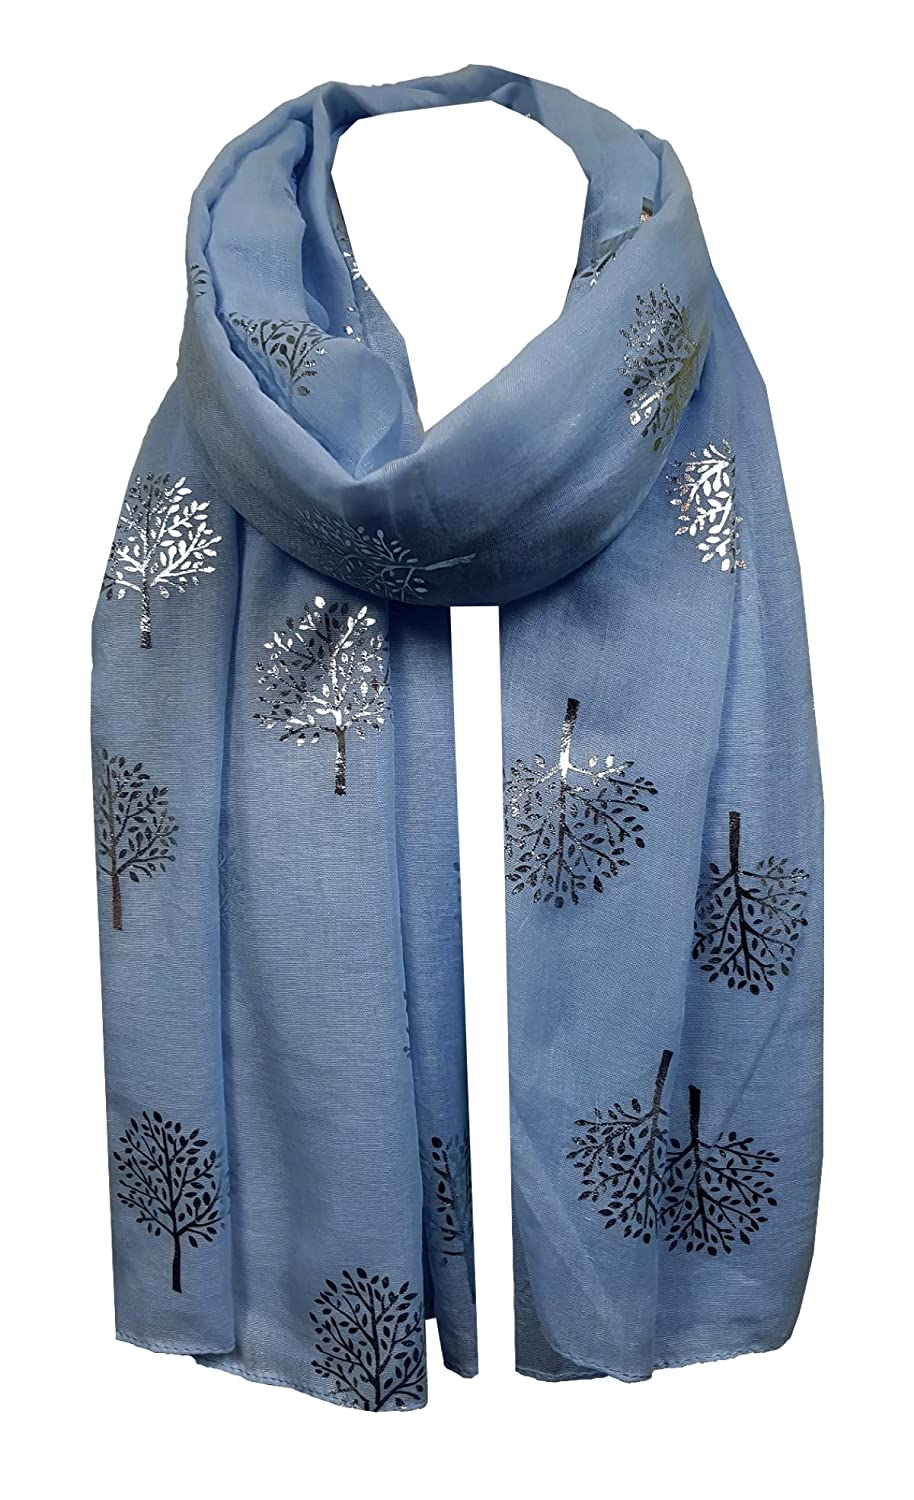 e4bbfd28d World of Shawls Silver Foil Mulberry Tree Print Fashion Scarf (Baby Blue):  Amazon.co.uk: Clothing